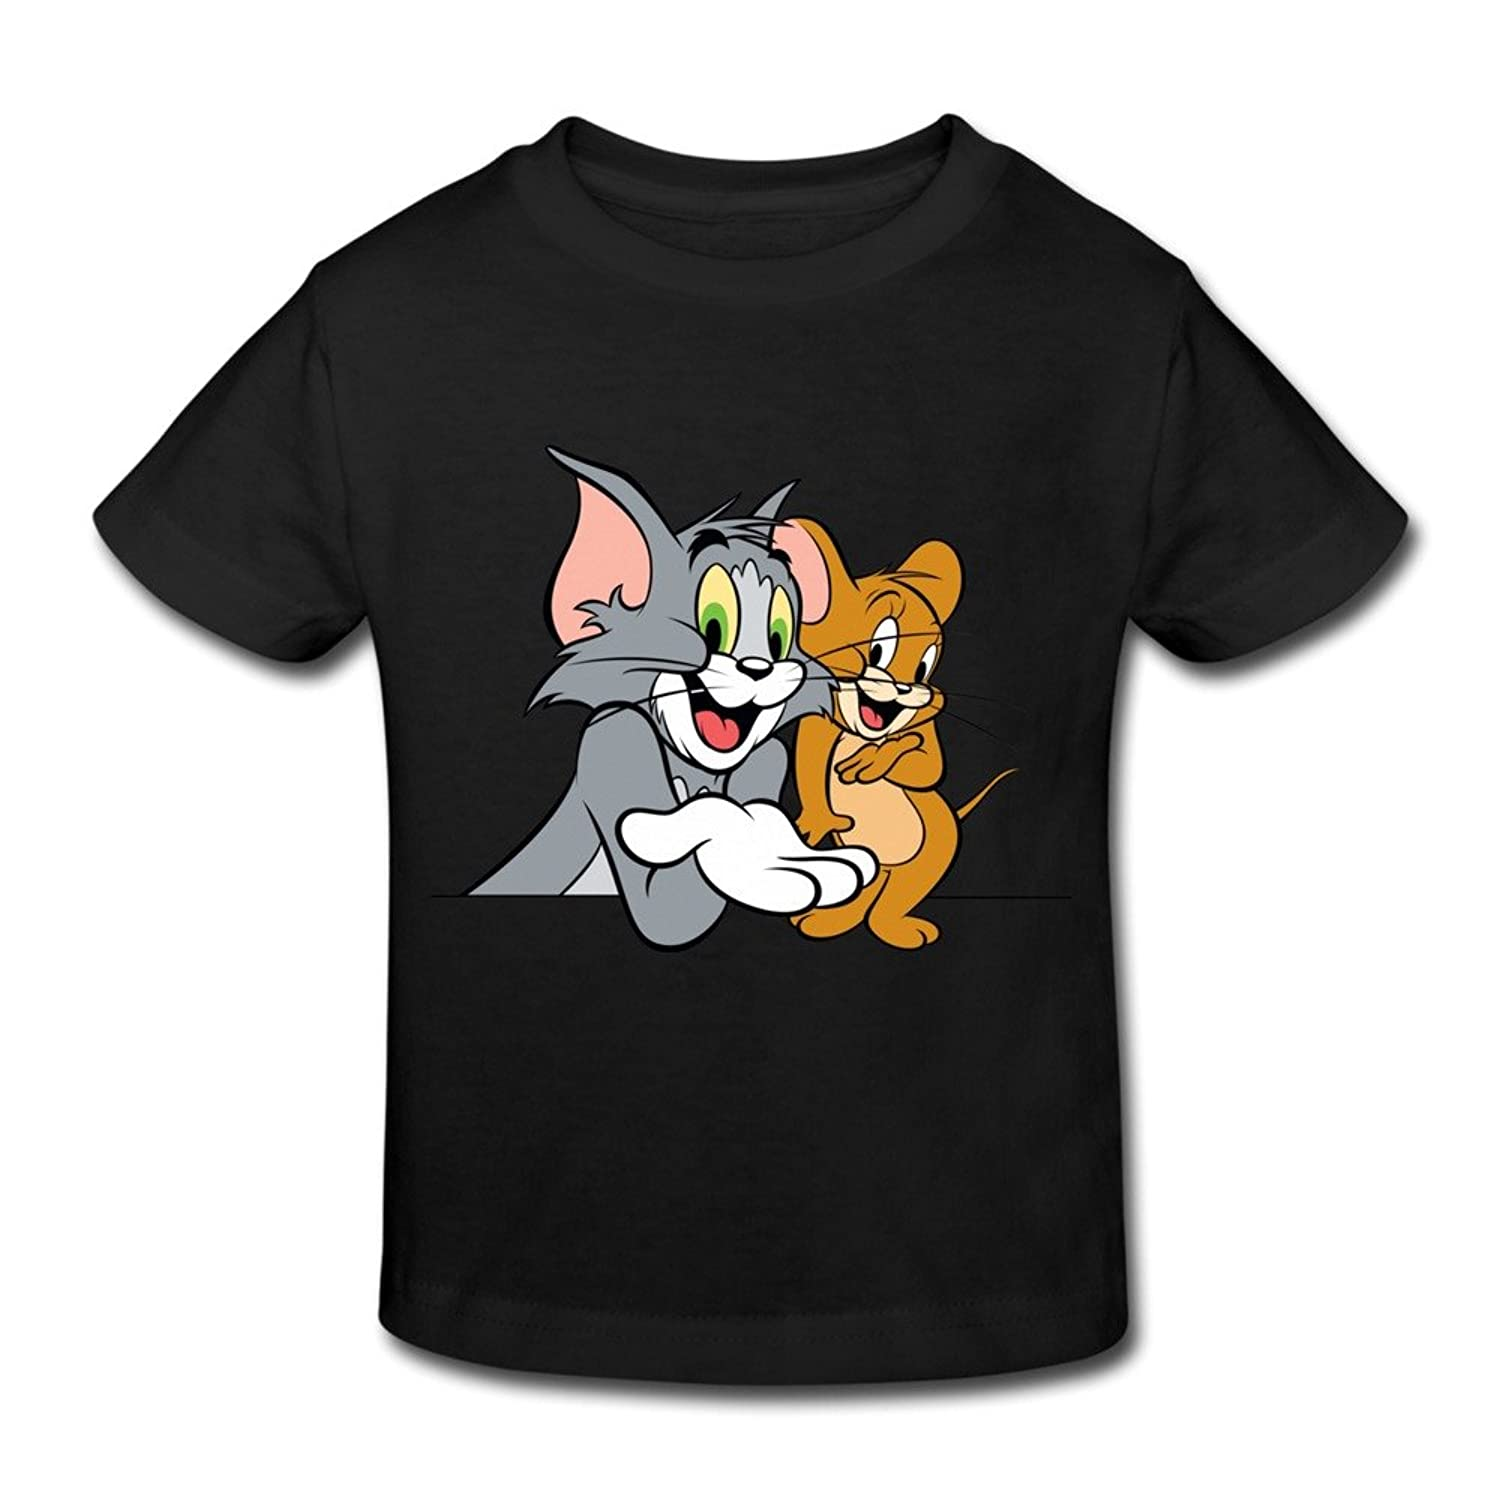 Kids Toddler Tom Jerry Show Little Boys Girls T-Shirt